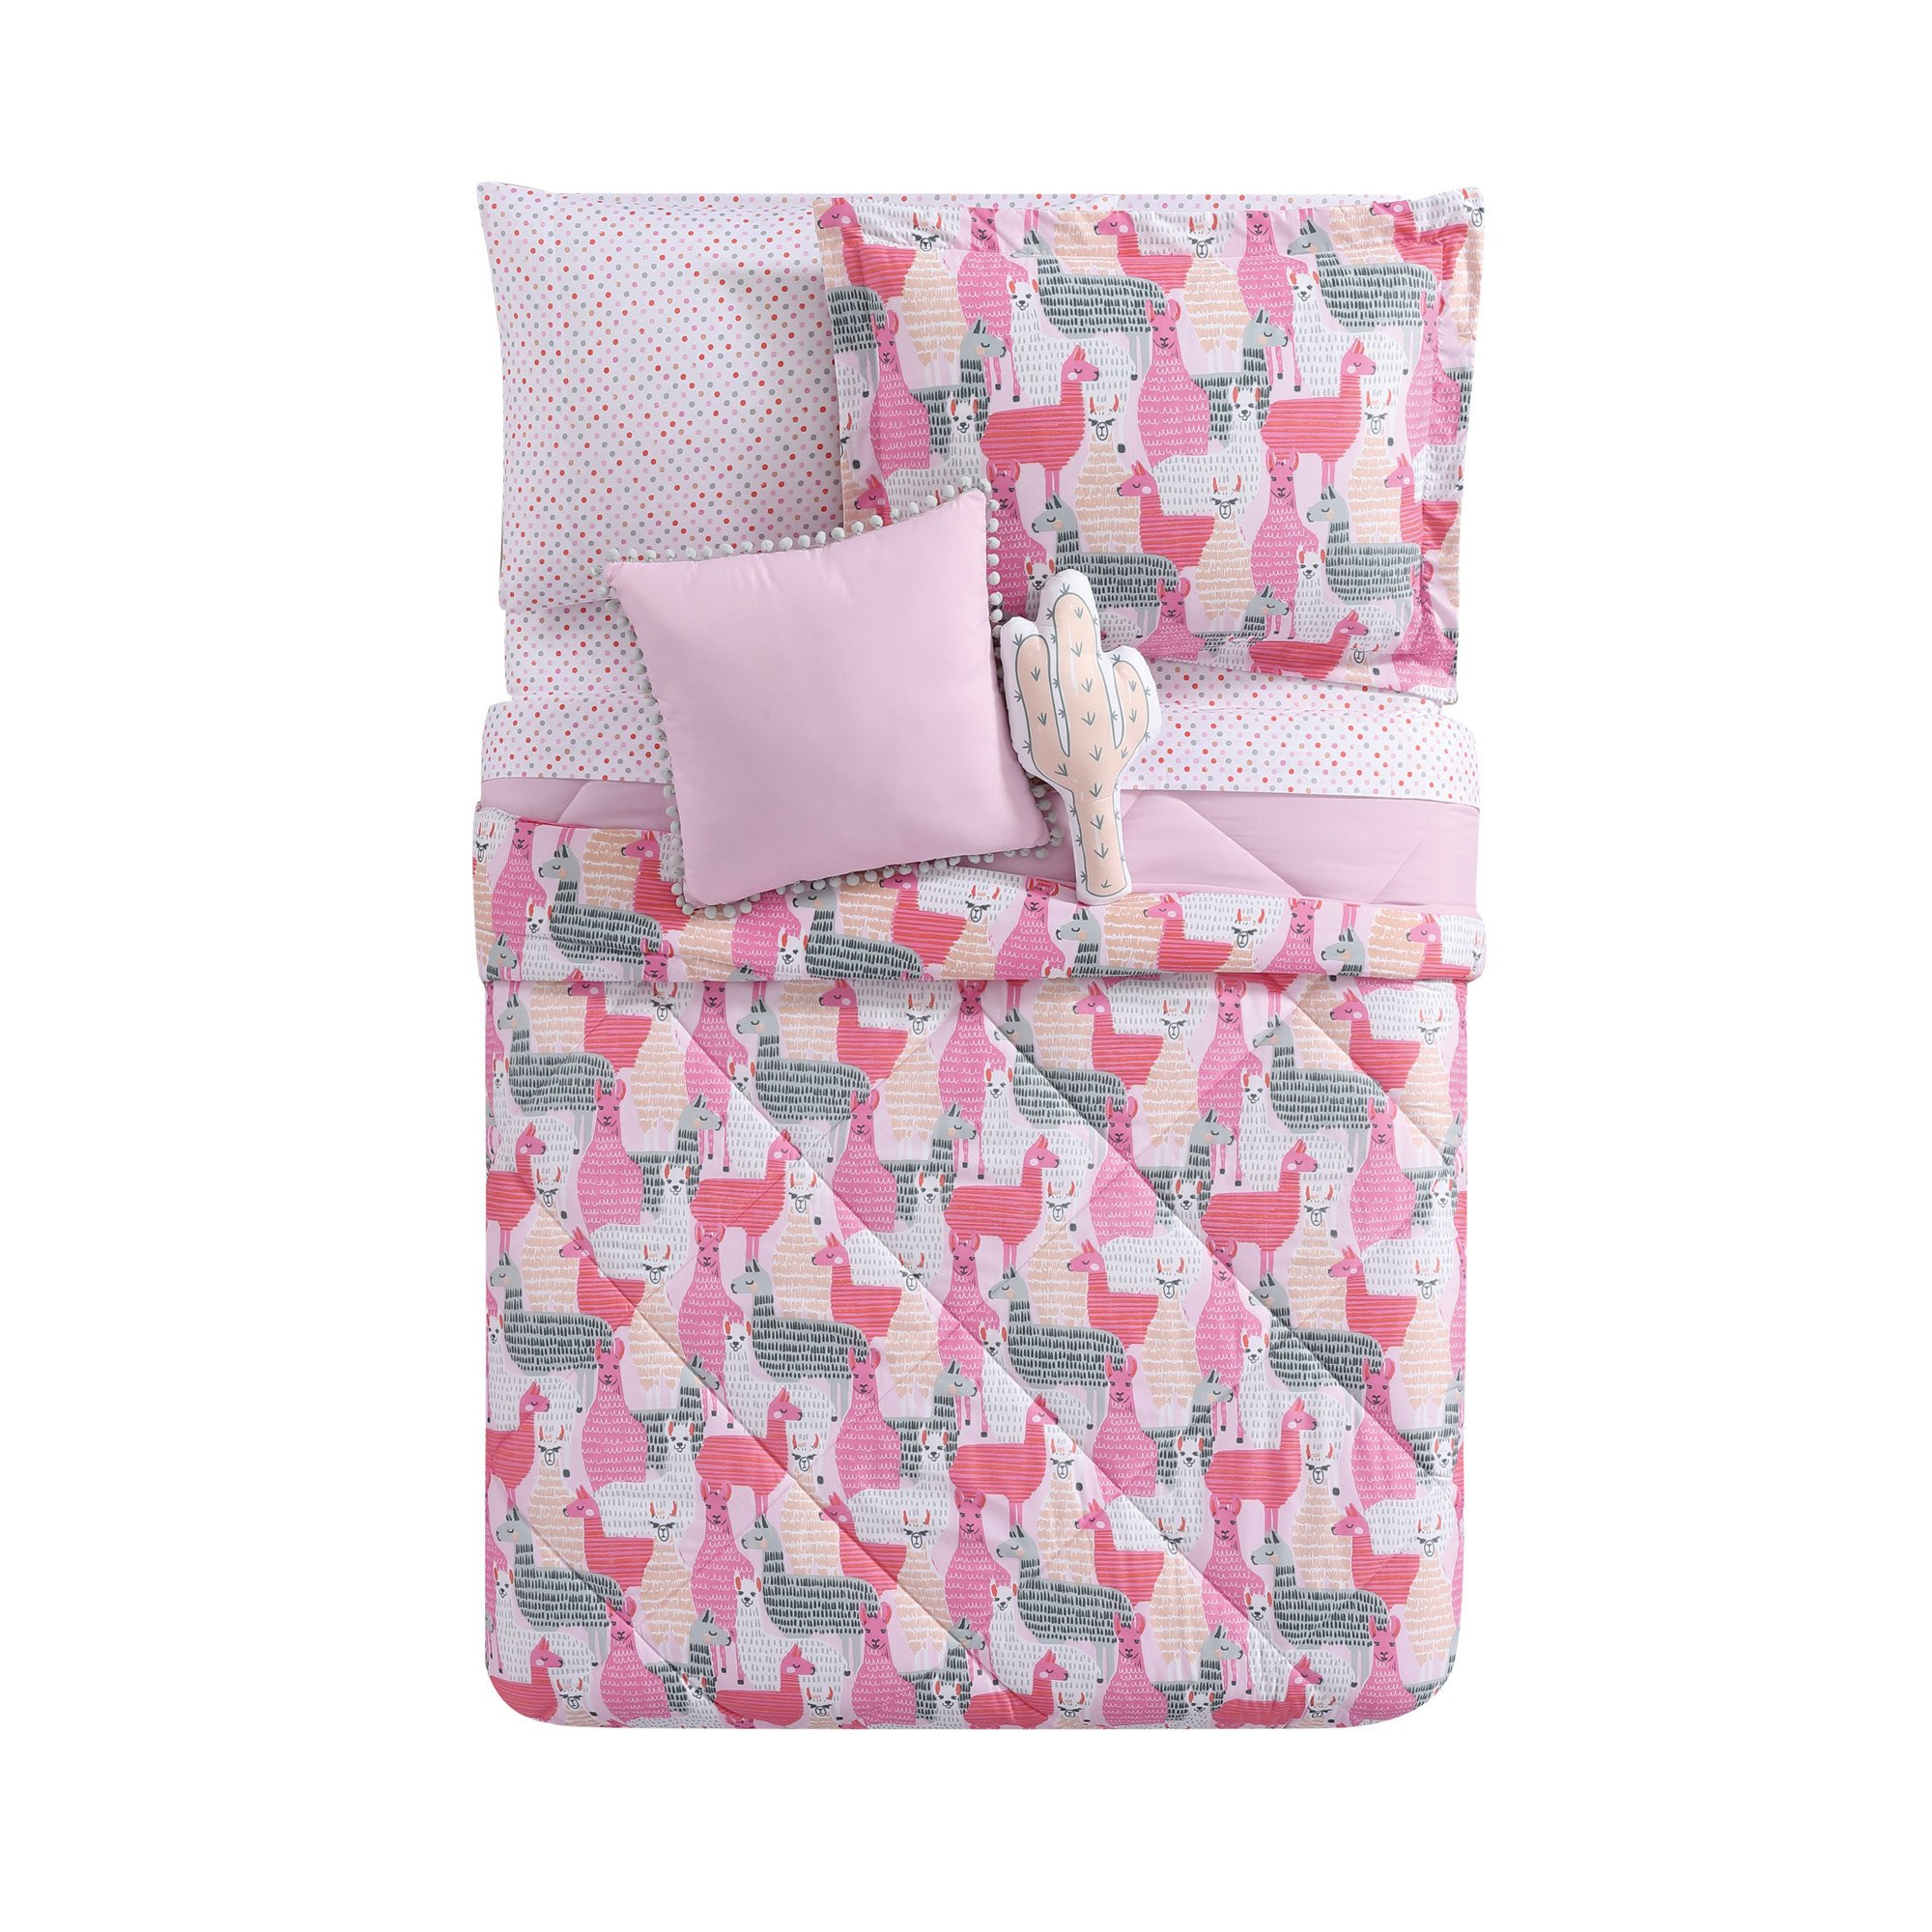 N-A 3 Piece Girls Pink White Grey Llama Comforter Full Queen Set, Vibrant Girly All Over Llamas Themed Bedding, Cute Multi Animal Themed, Microfiber, Peach Gray